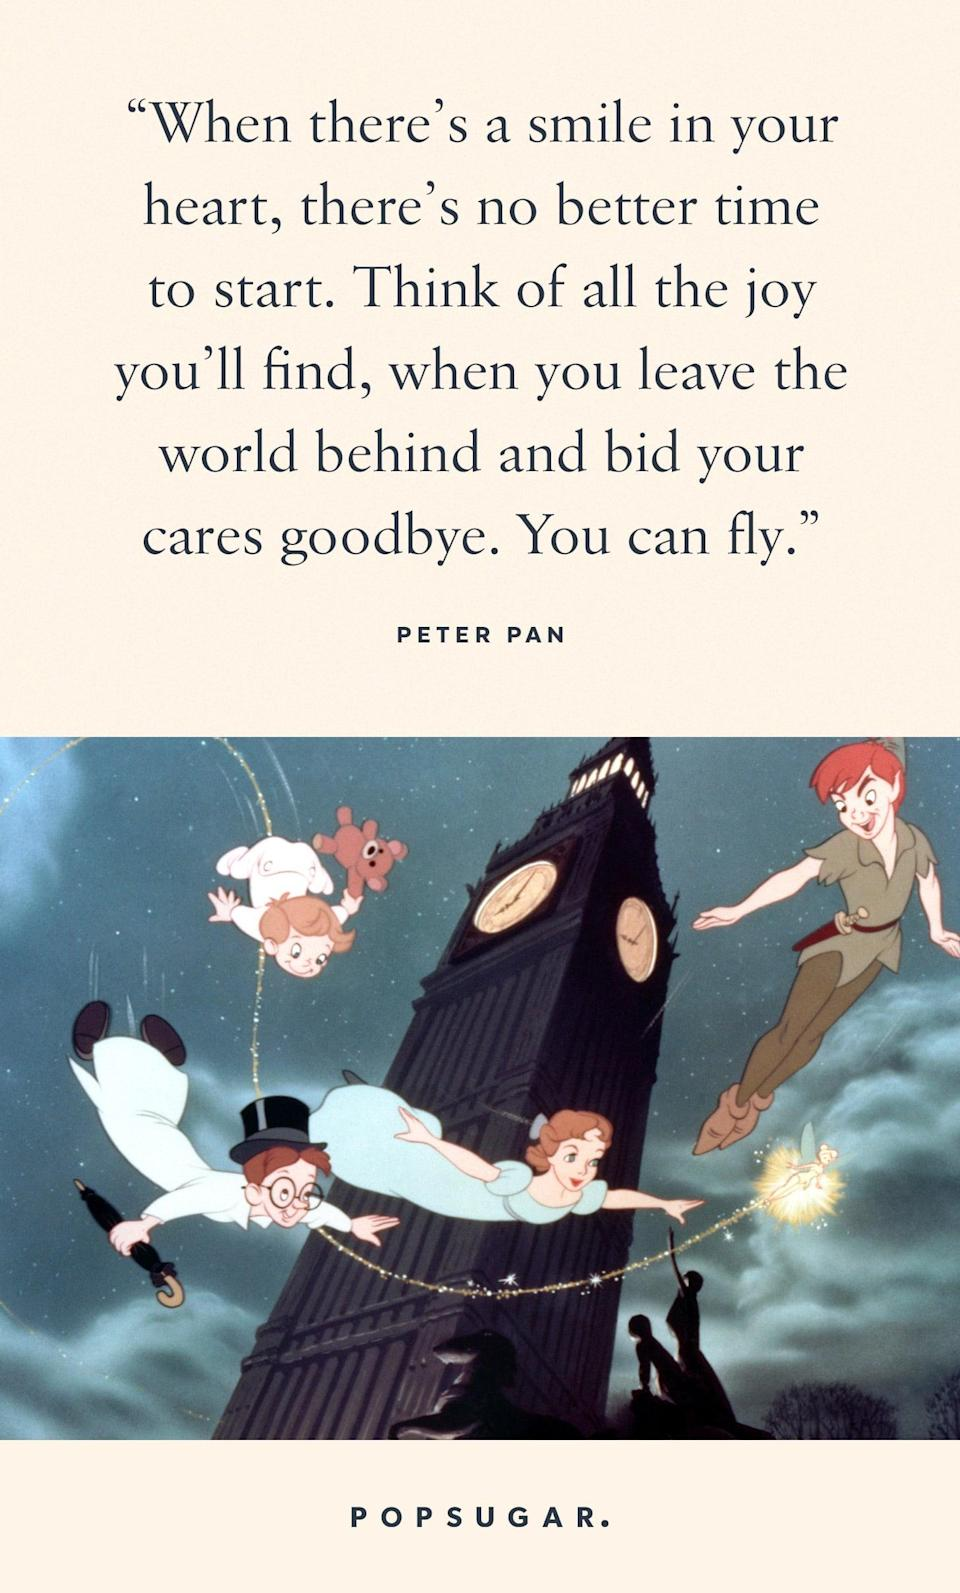 "<p>""When there's a smile in your heart, there's no better time to start. Think of all the joy you'll find, when you leave the world behind and bid your cares goodbye. You can fly."" - Peter Pan, <b>Peter Pan</b></p>"